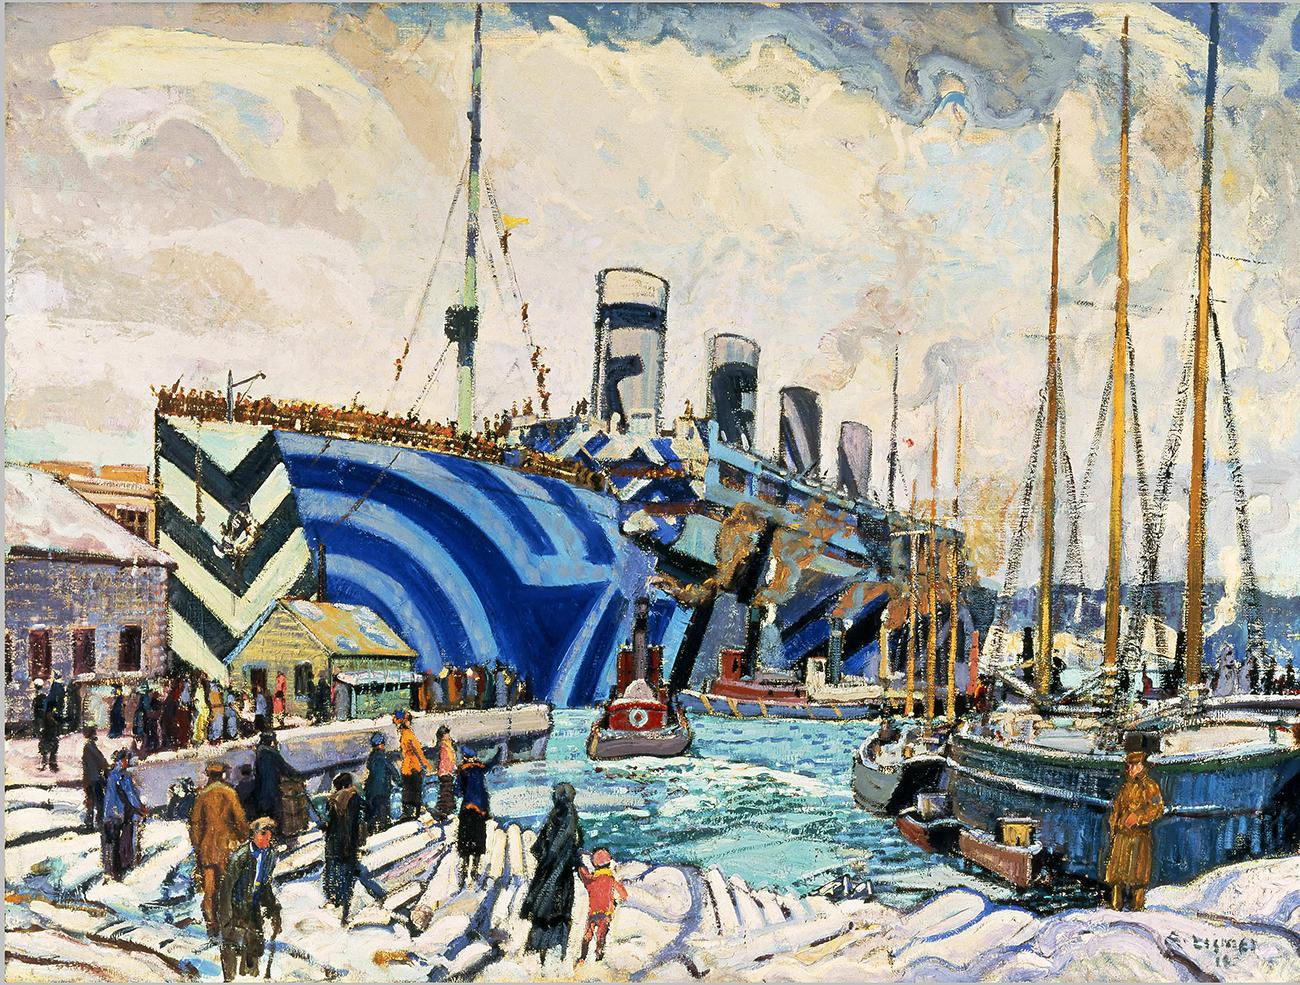 painting of a troopship in a harbour